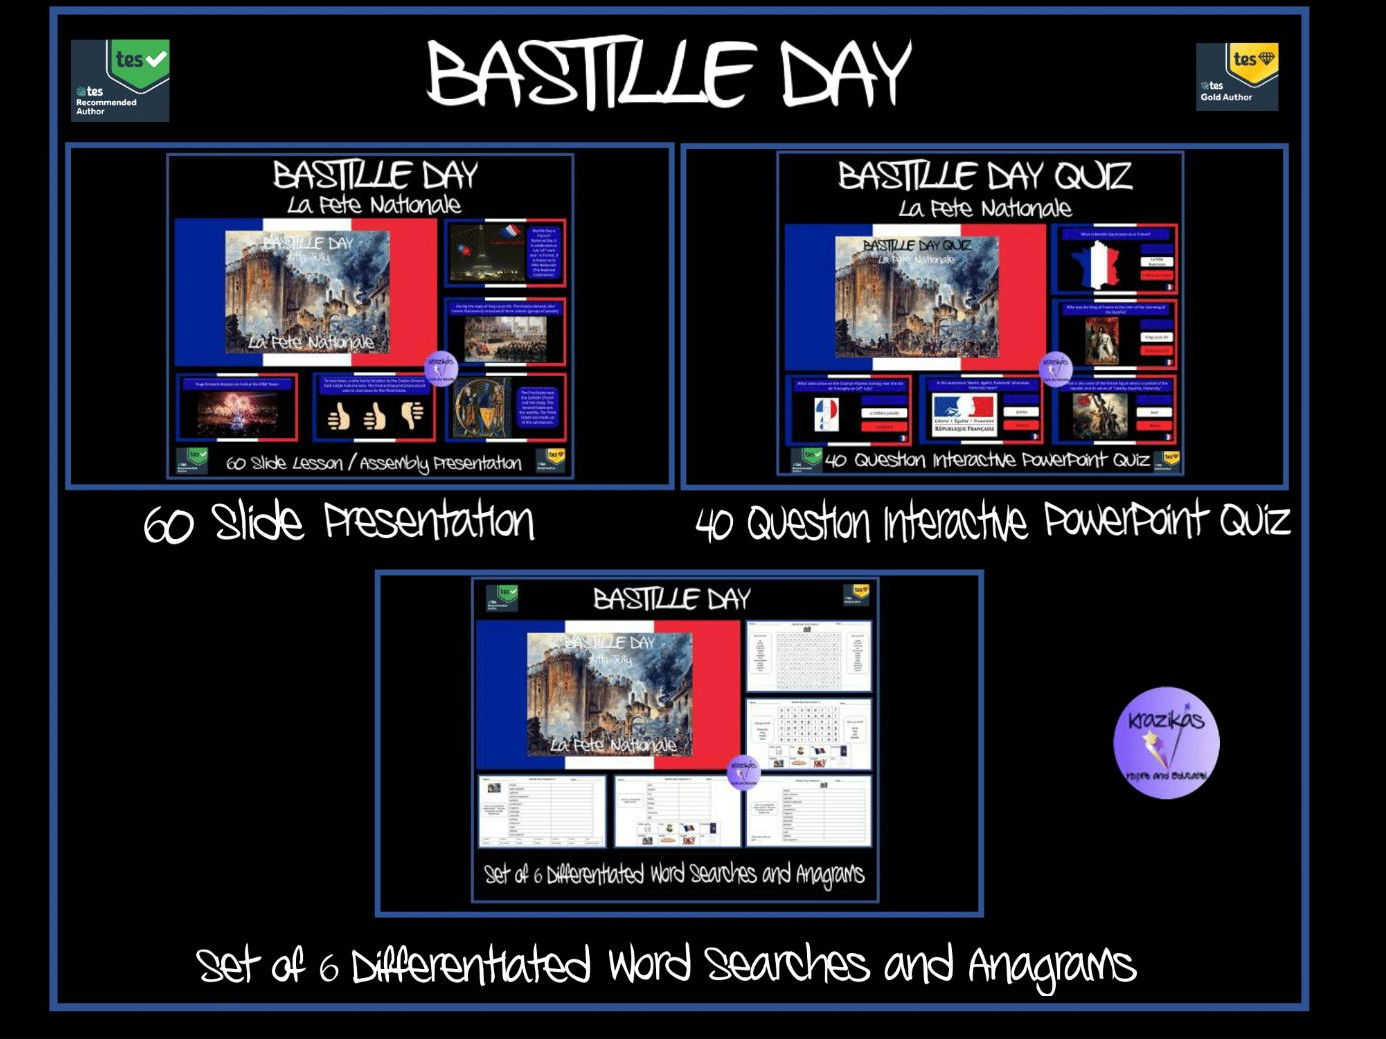 Bastille Day/La Fête Nationale PowerPoint Presentation, 40 Question Quiz, Set of 6 Differentiated Word Searches and Anagrams